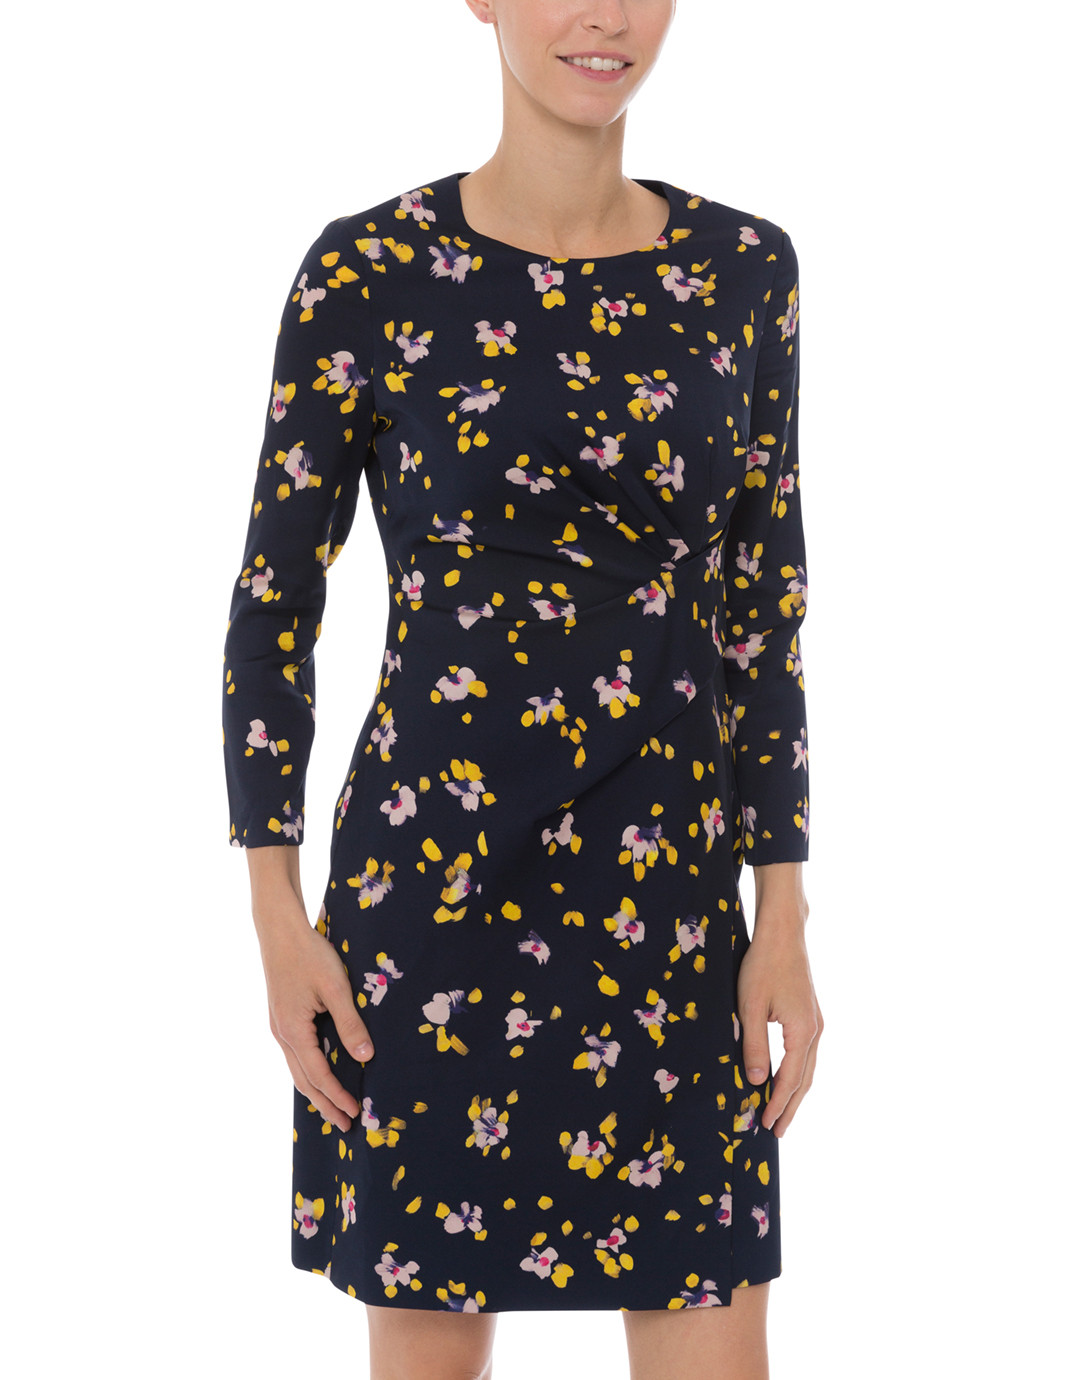 9706c079bcce Navy and Yellow Floral Print Silk Dress. $428 $128 FINAL SALE: CANNOT BE  RETURNED